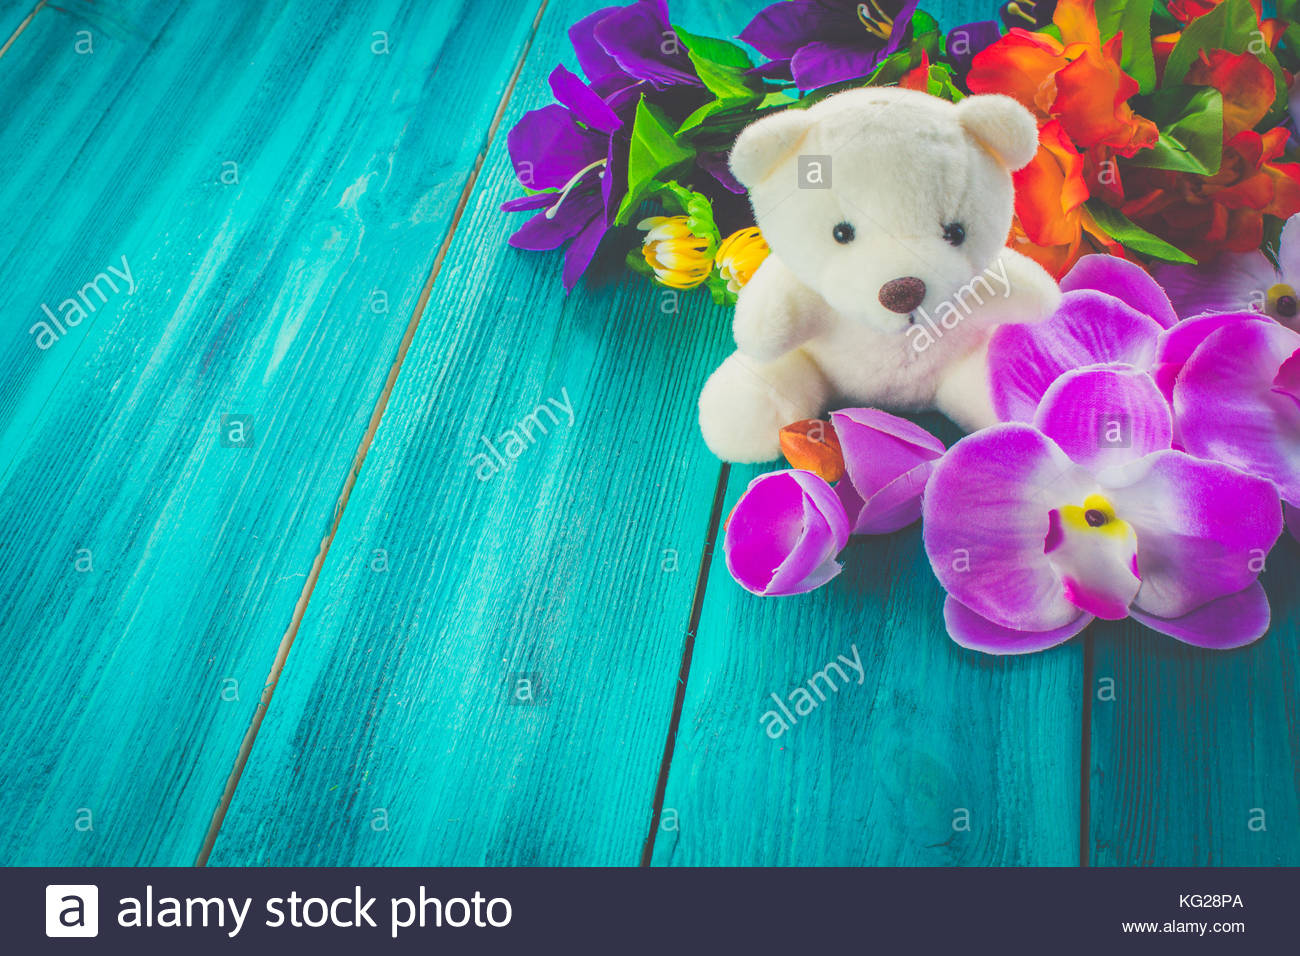 Mishka Teddy and artificial flowers on a blue wooden background 1300x956